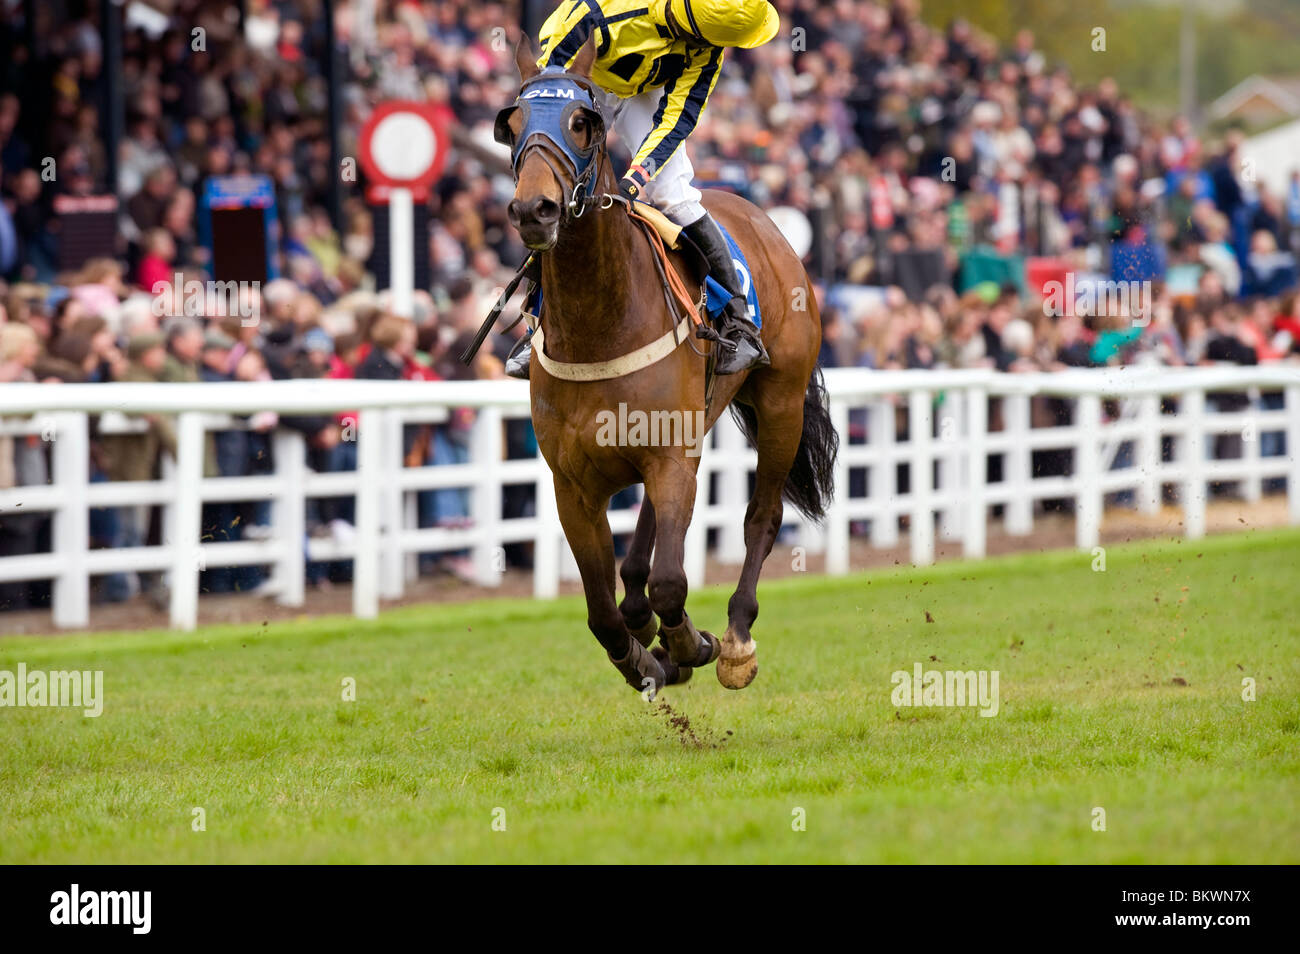 Plumpton Races in Sussex - mud flies high as the 2.20 first race of the afternoon passes the grandstand. - Stock Image